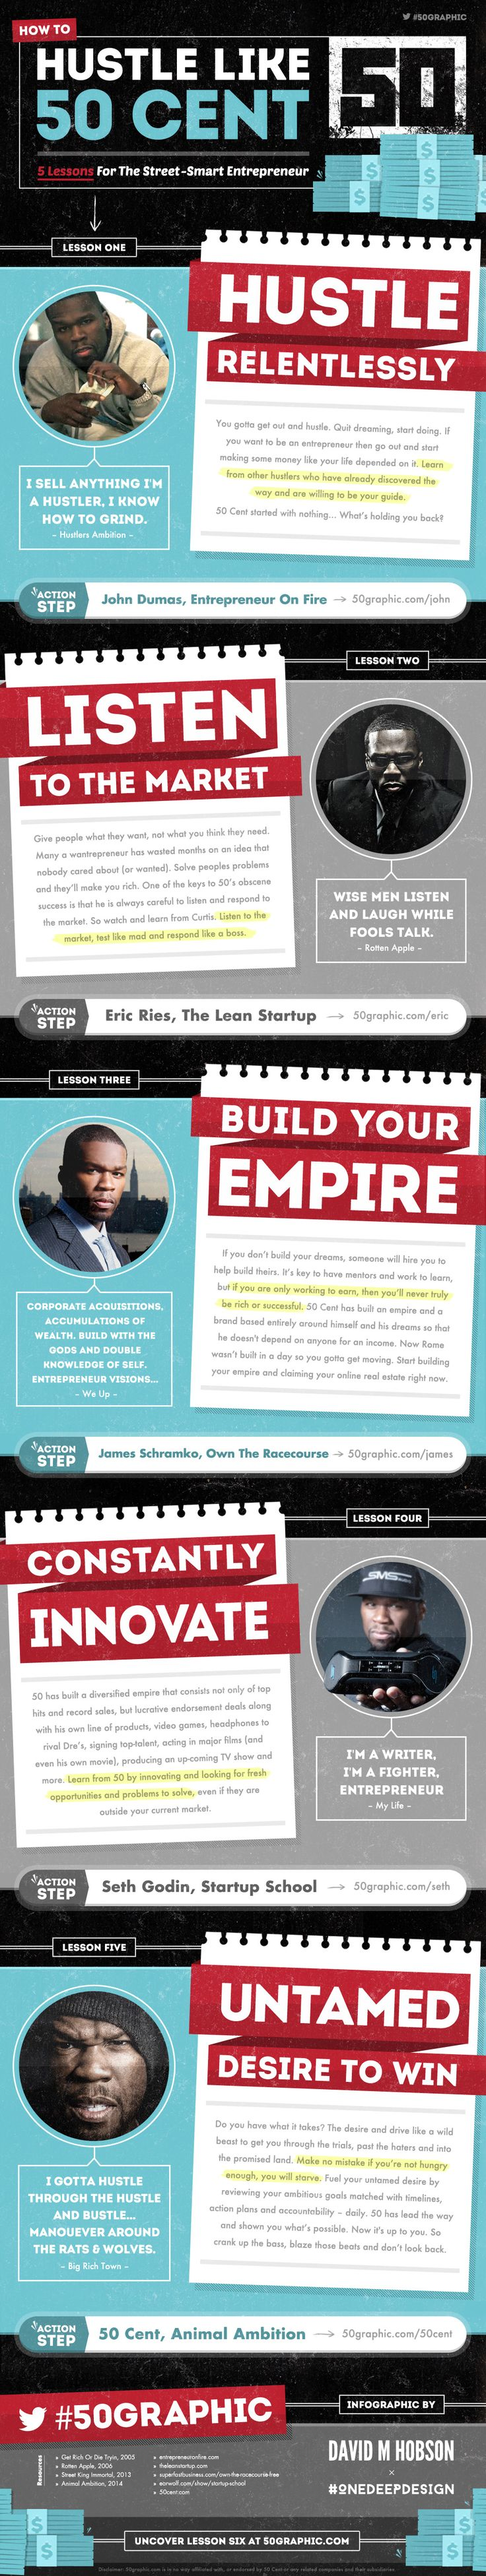 (Infographic) 5 Lessons On How To Hustle Like 50 Cent